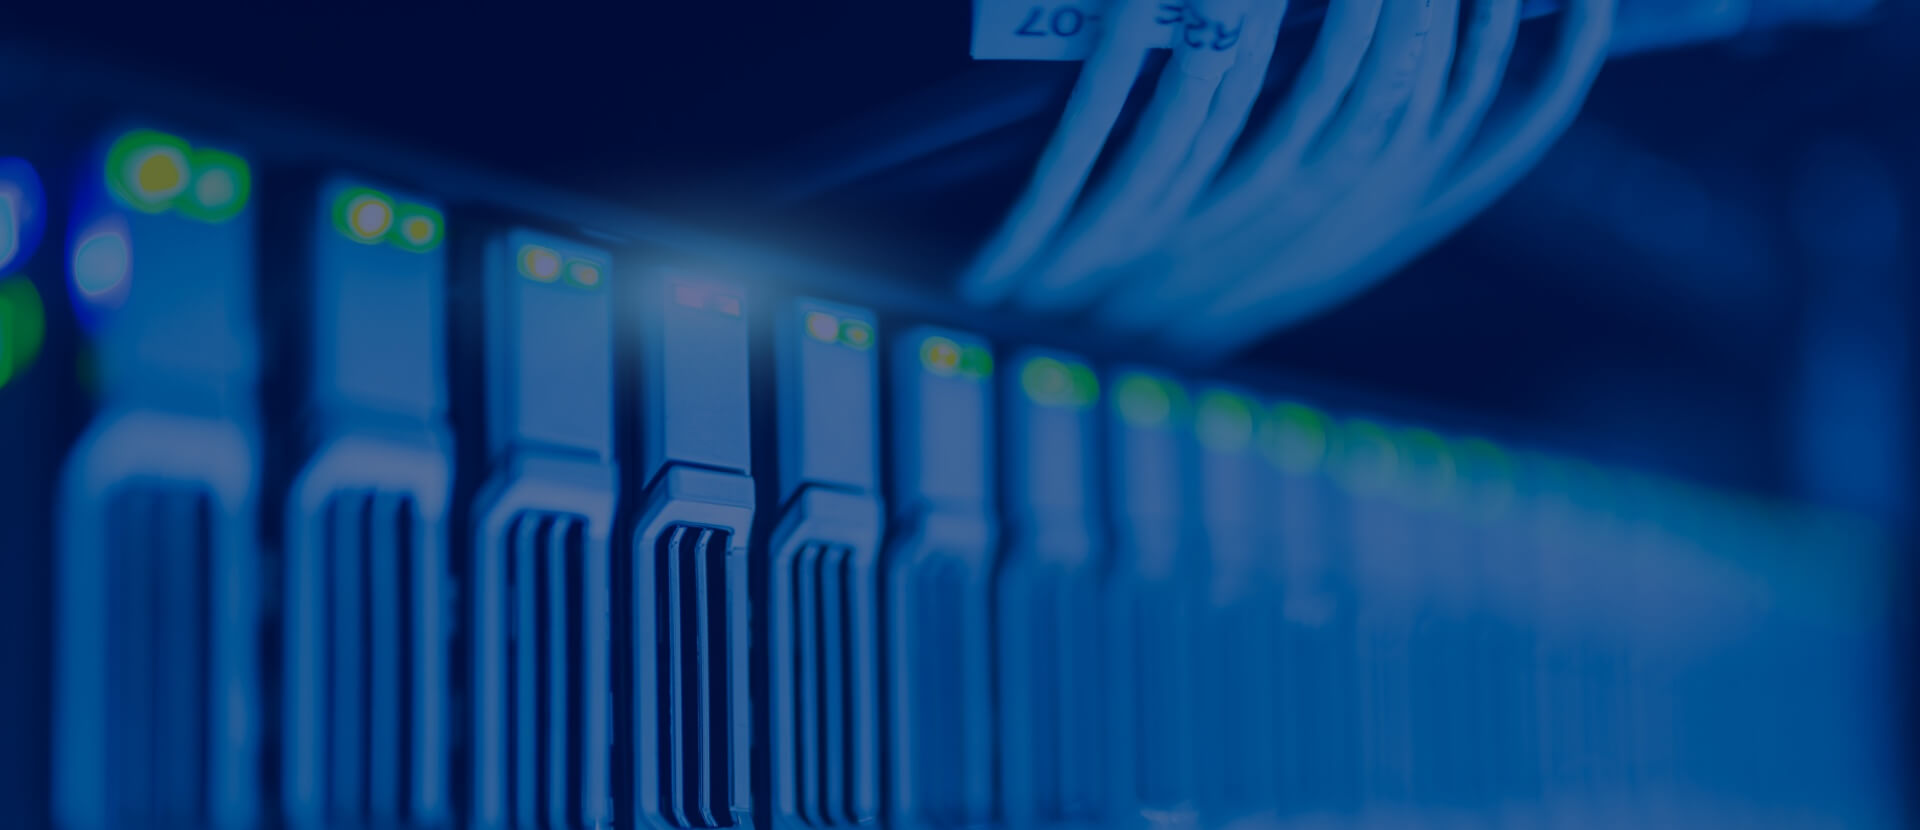 Networking | Data Services | Video Transport | Managed Services Provider